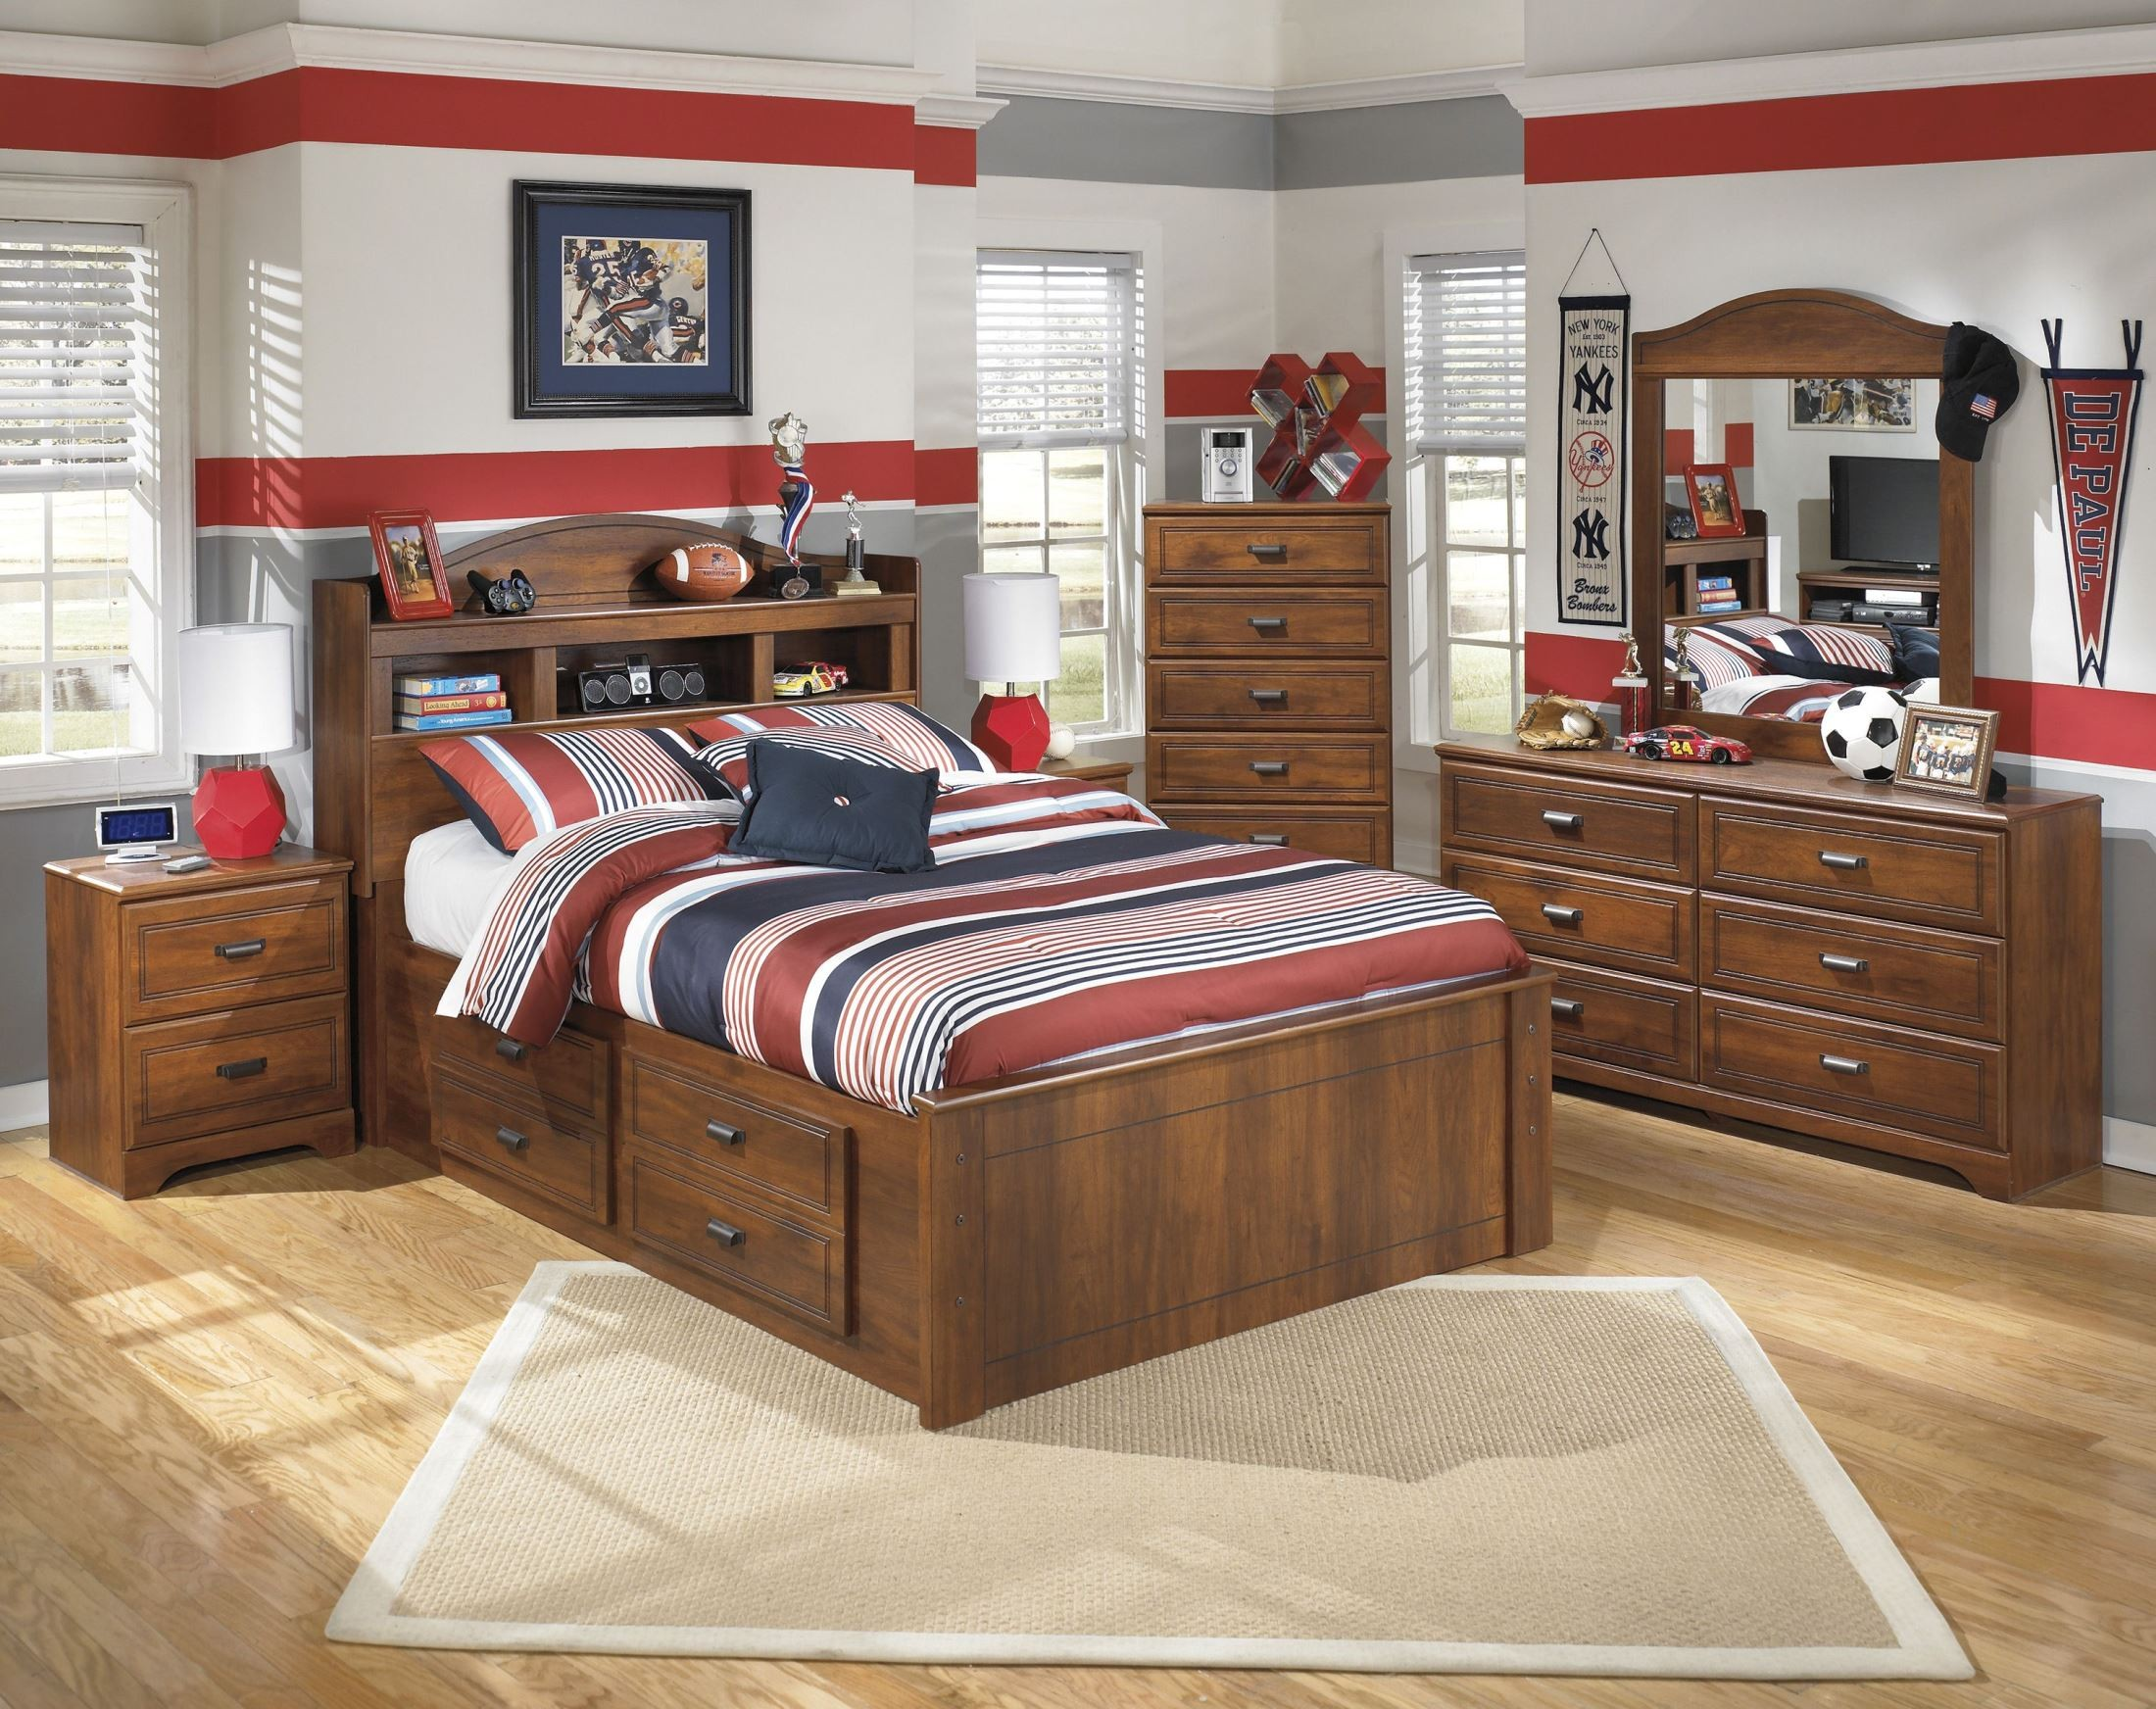 Barchan Full Bookcase Underbed Storage Bed From Ashley Coleman Furniture